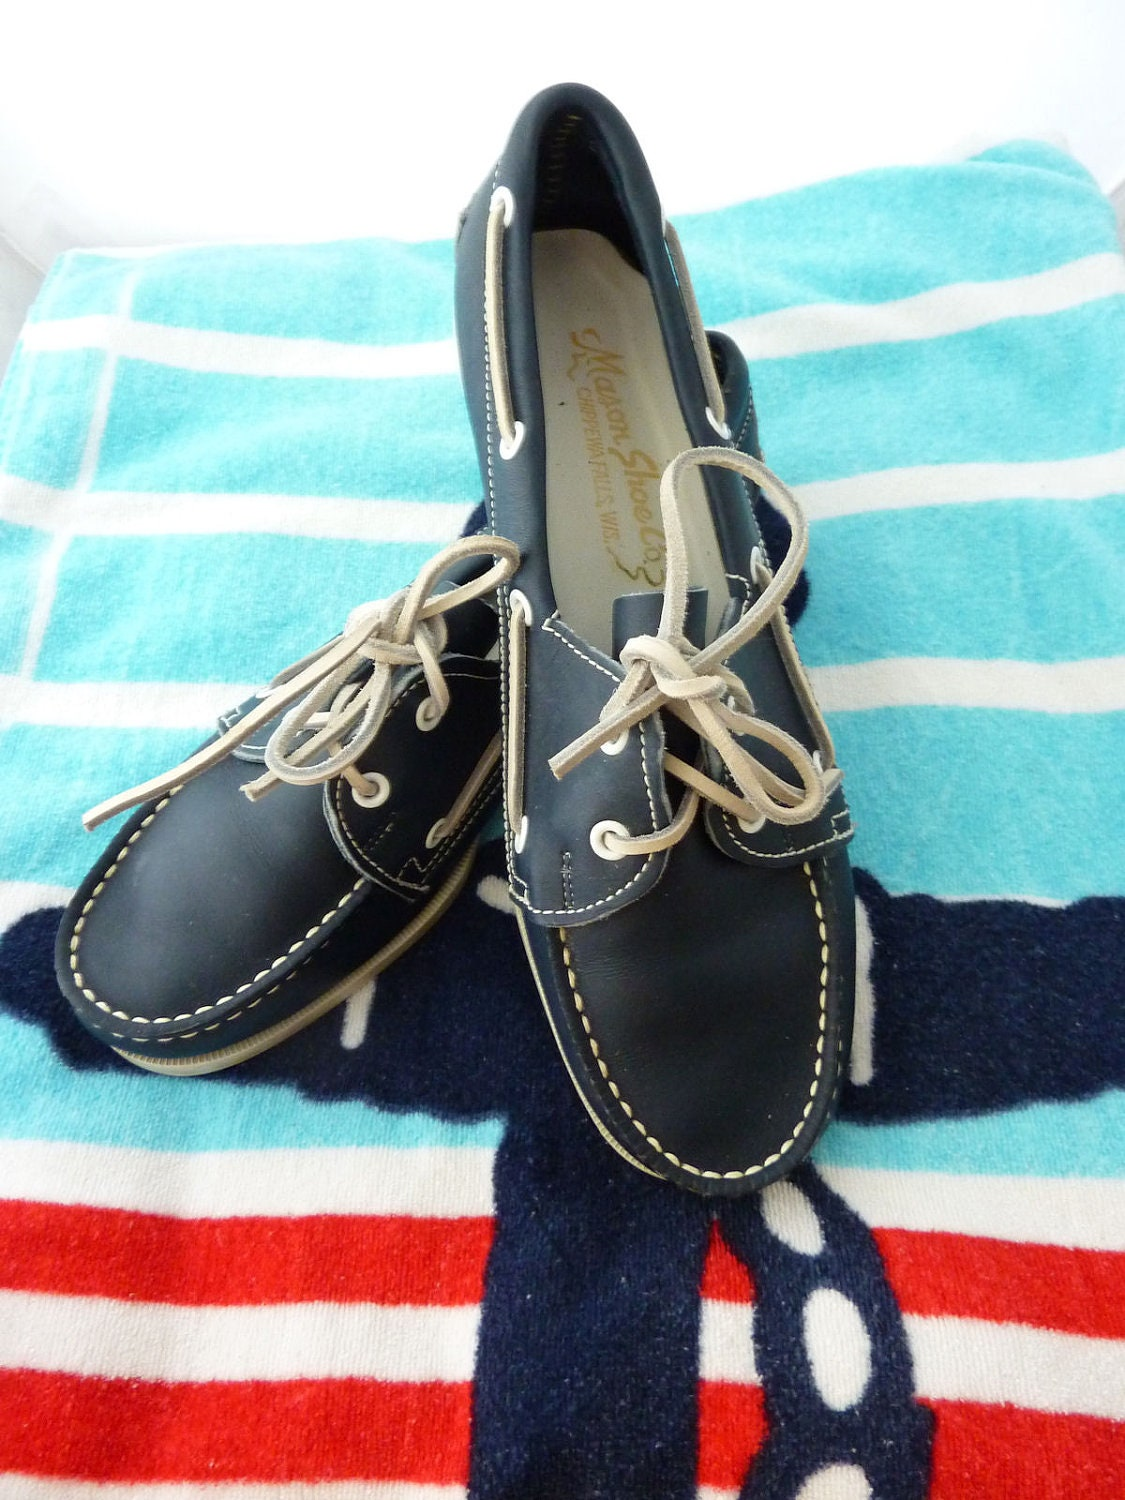 Vintage Leather Boat Shoes, Mason Shoe Co, Chippewa Falls WI